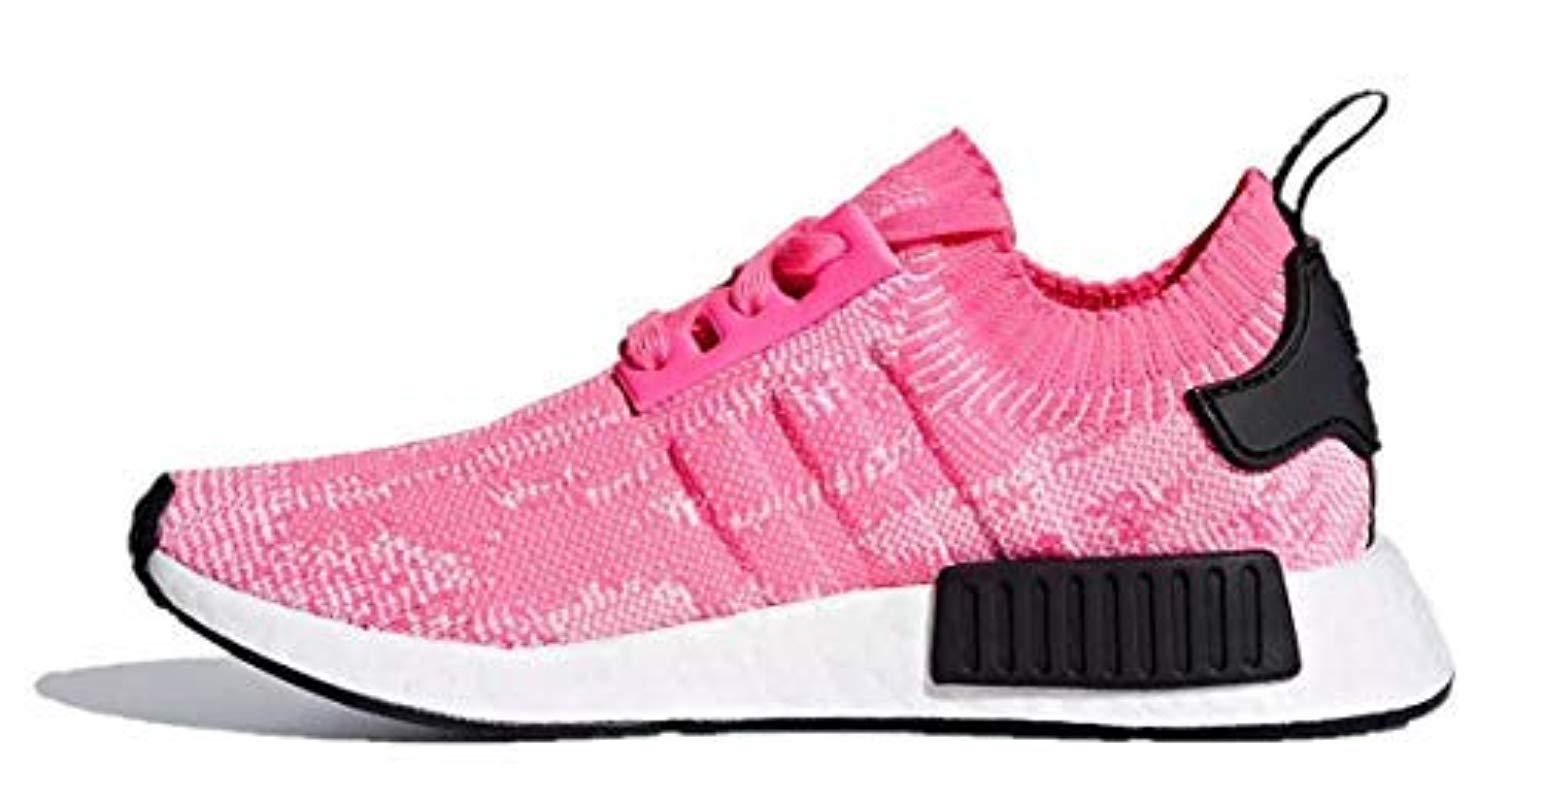 589a0d09d3501 Lyst - adidas Originals Nmd_r1 S Running Trainers Sneakers in Pink